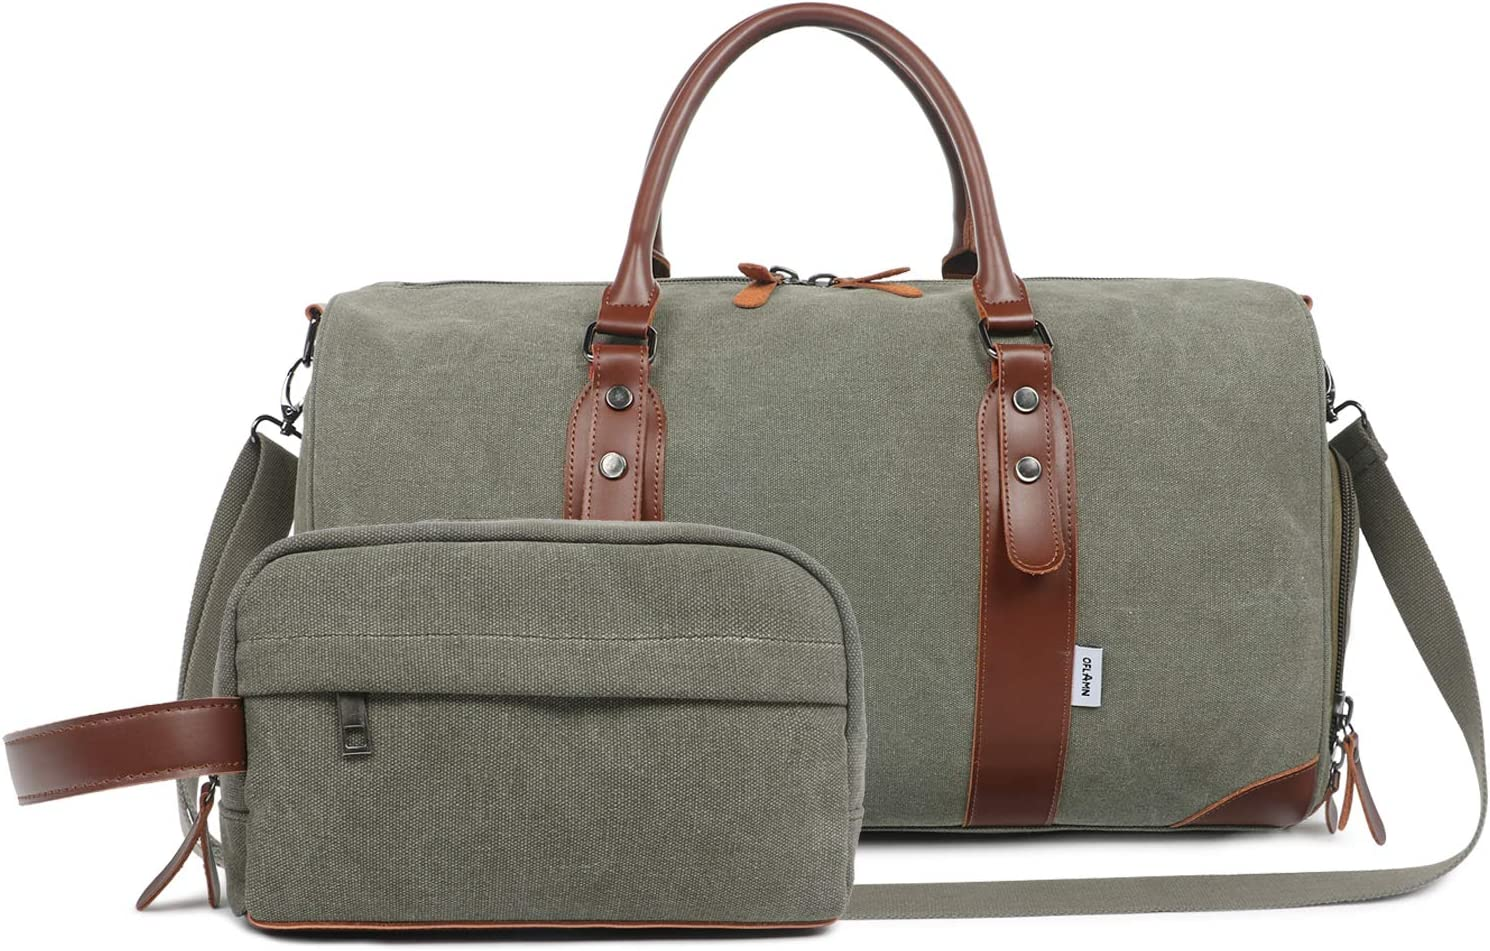 Oflamn Men s Army Green Weekender Duffle Bag with Shaving Kit Bag Shoes Compartment